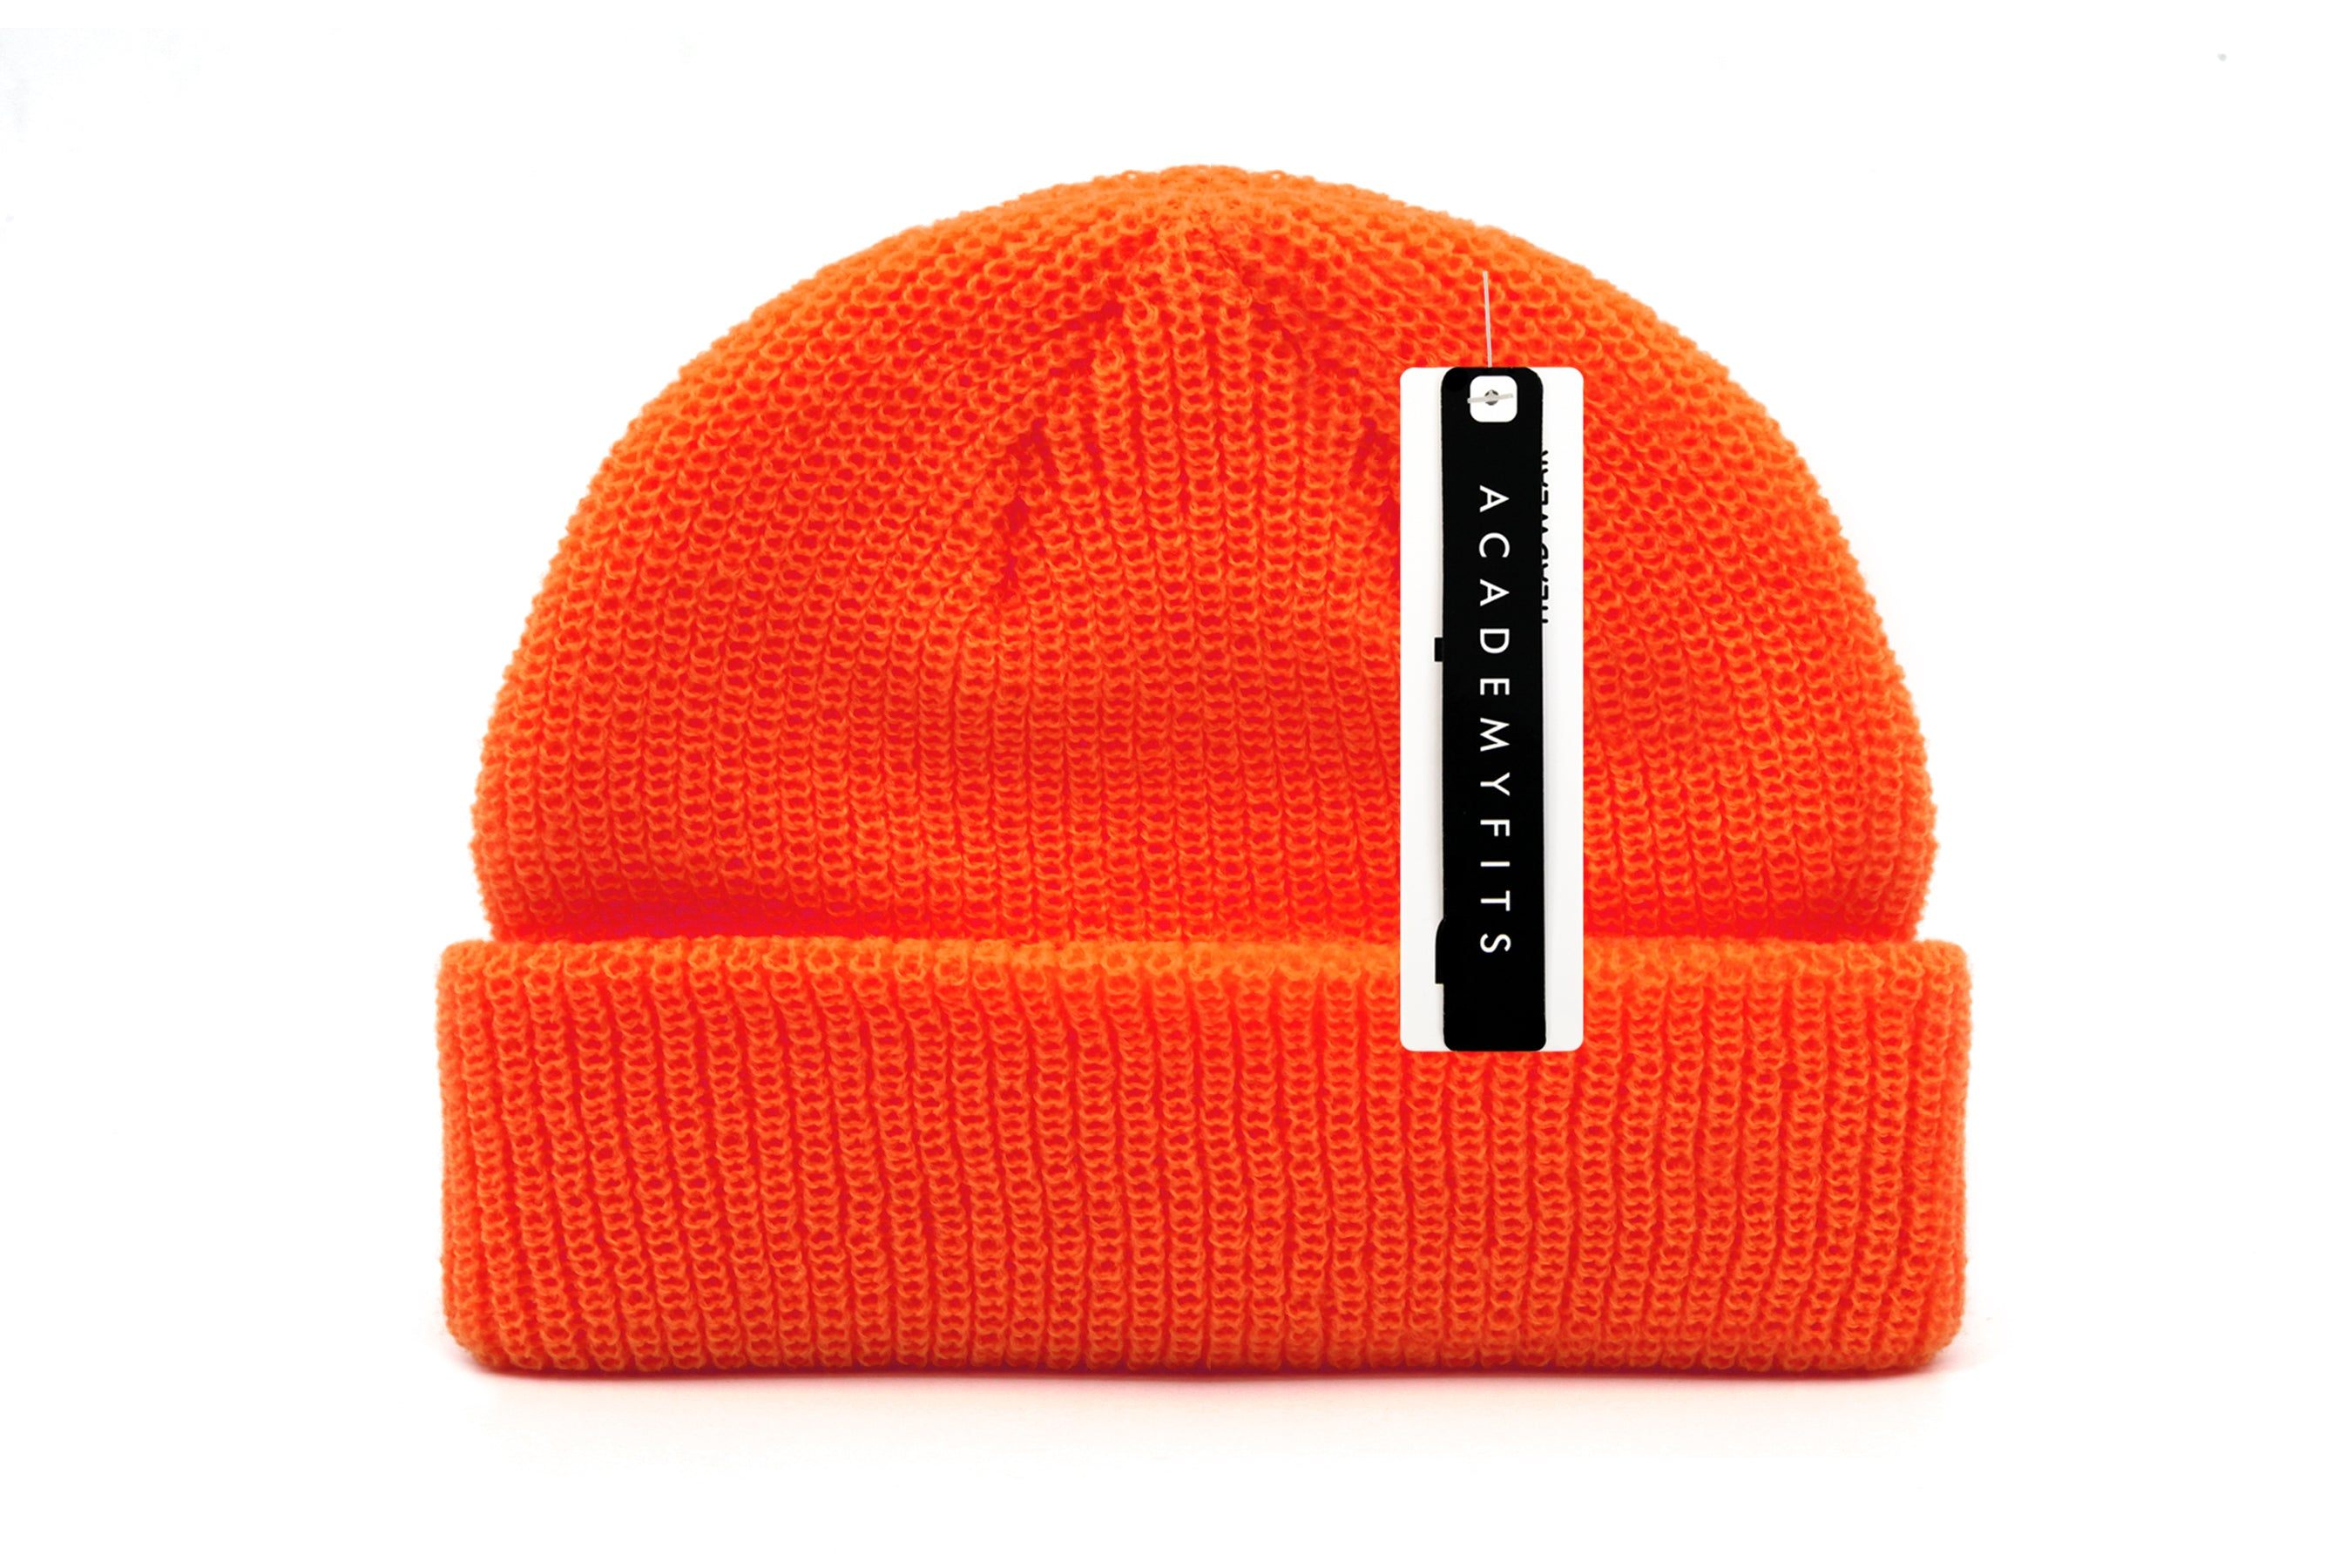 NEW Ultra Soft Docker Knit Beanie #6013D